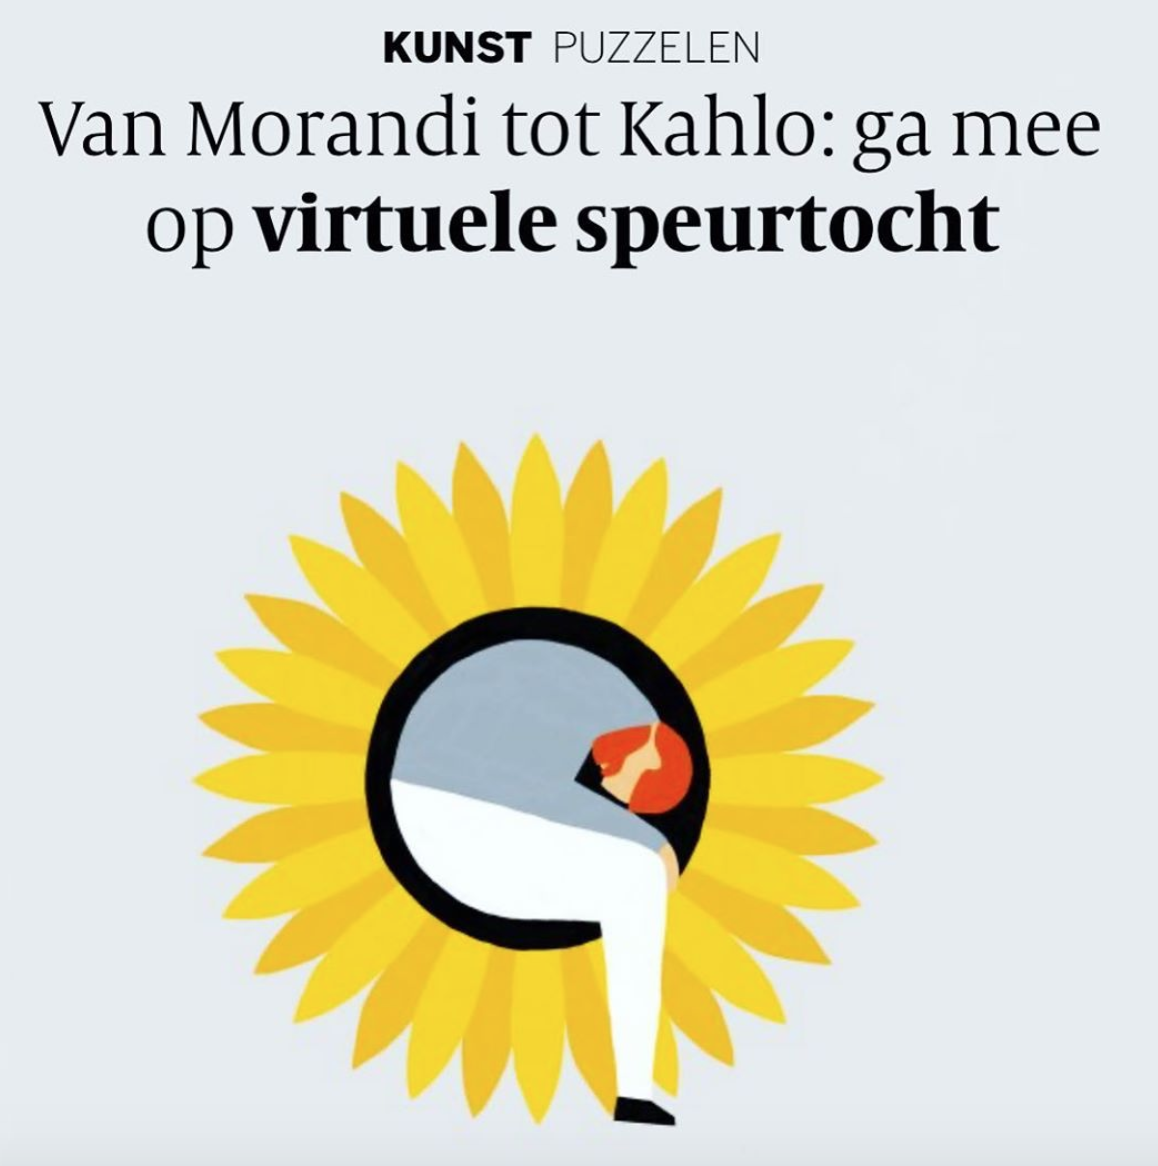 virtuele speurtocht